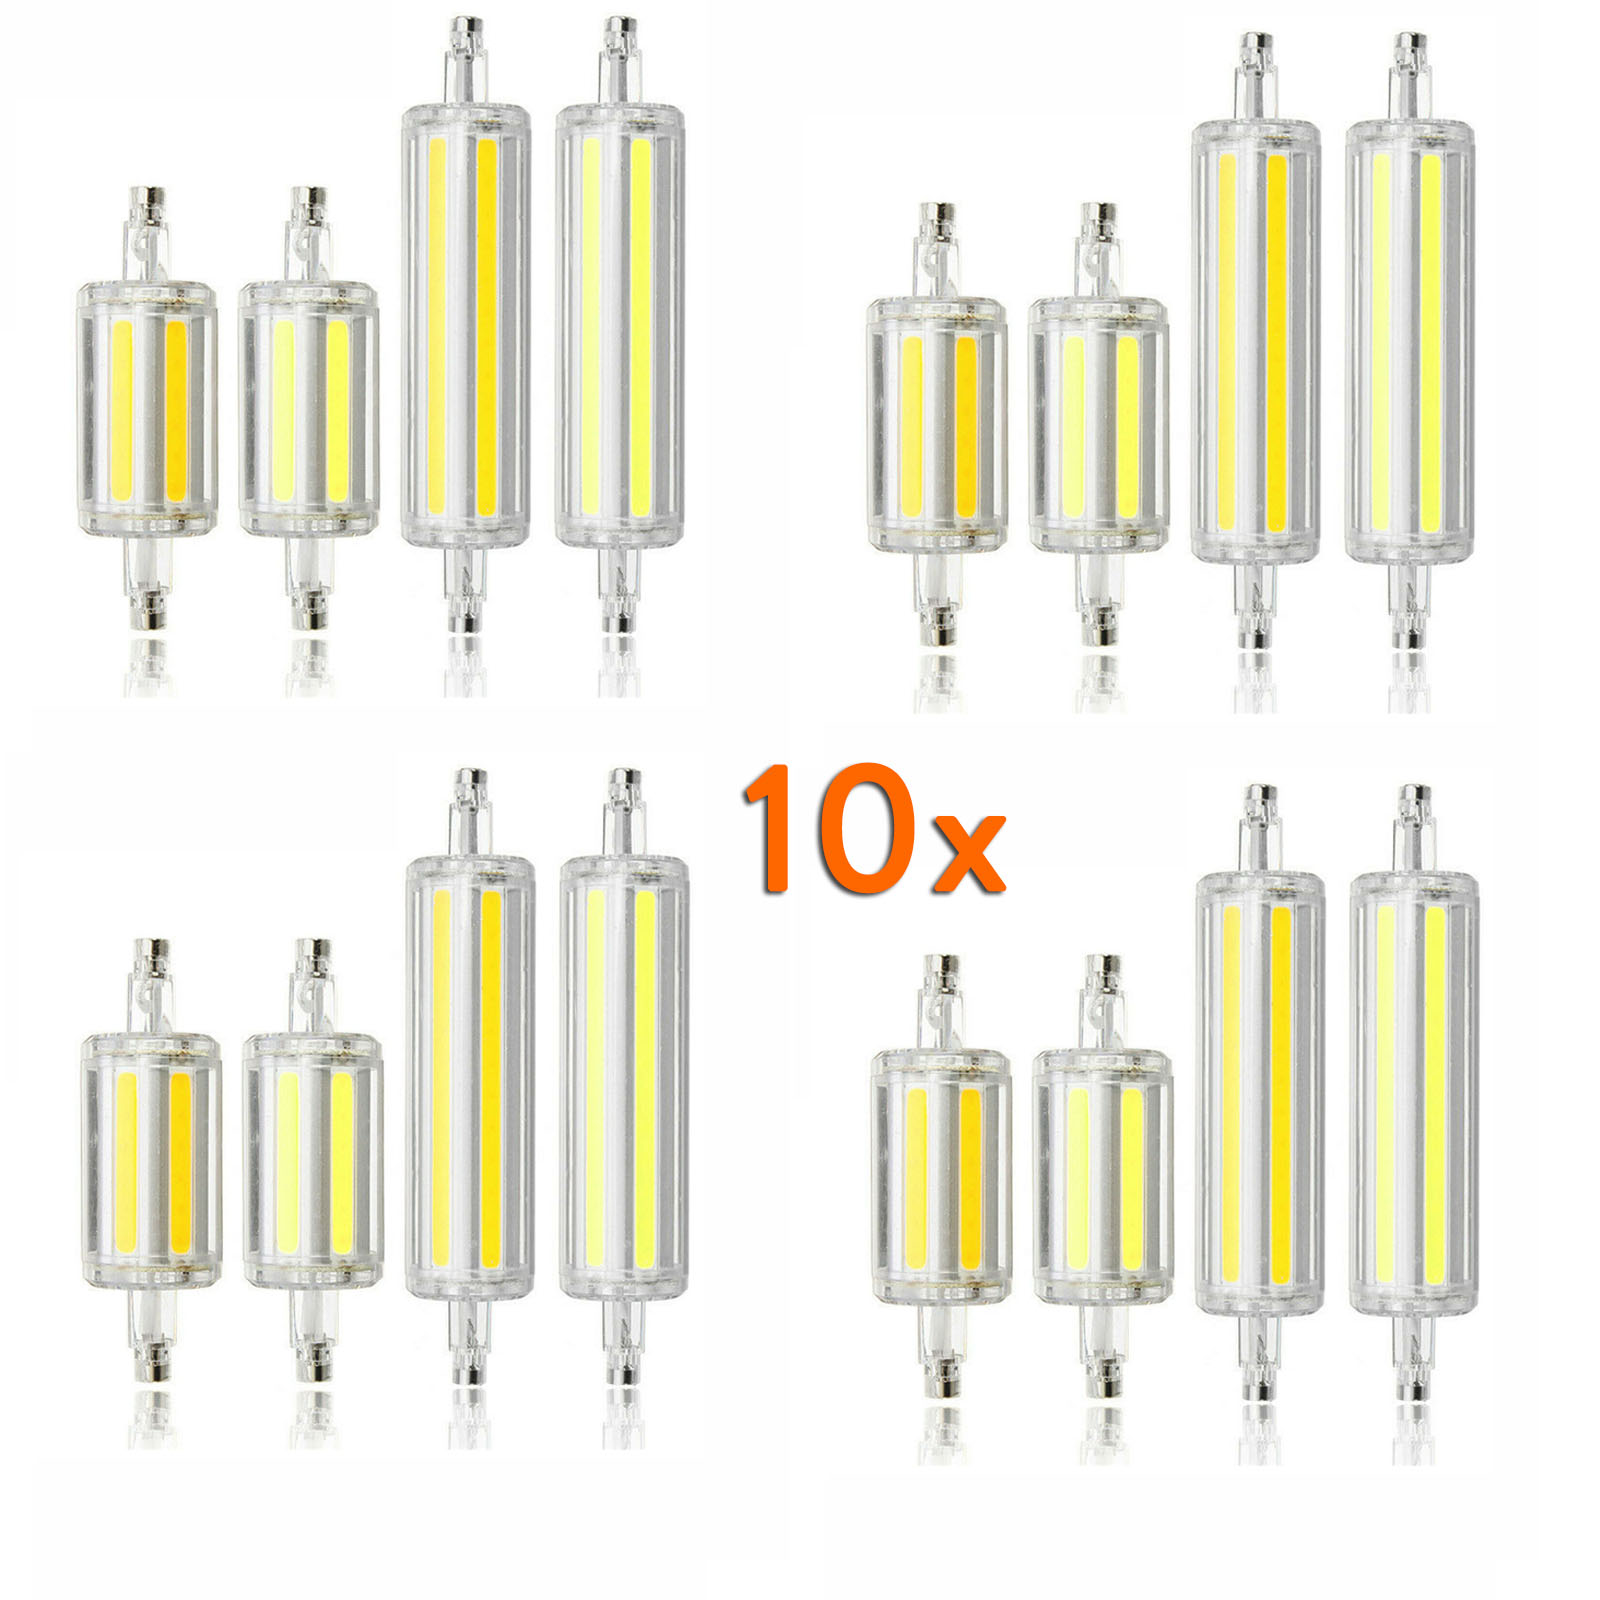 10x New Ampoule <font><b>R7S</b></font> <font><b>LED</b></font> Dimmable Flood Light J78 J118 78mm <font><b>118mm</b></font> 10W 20W COB Spotlight Corn Bulb Lamp 110V 220V <font><b>Bombillas</b></font> Lamps image